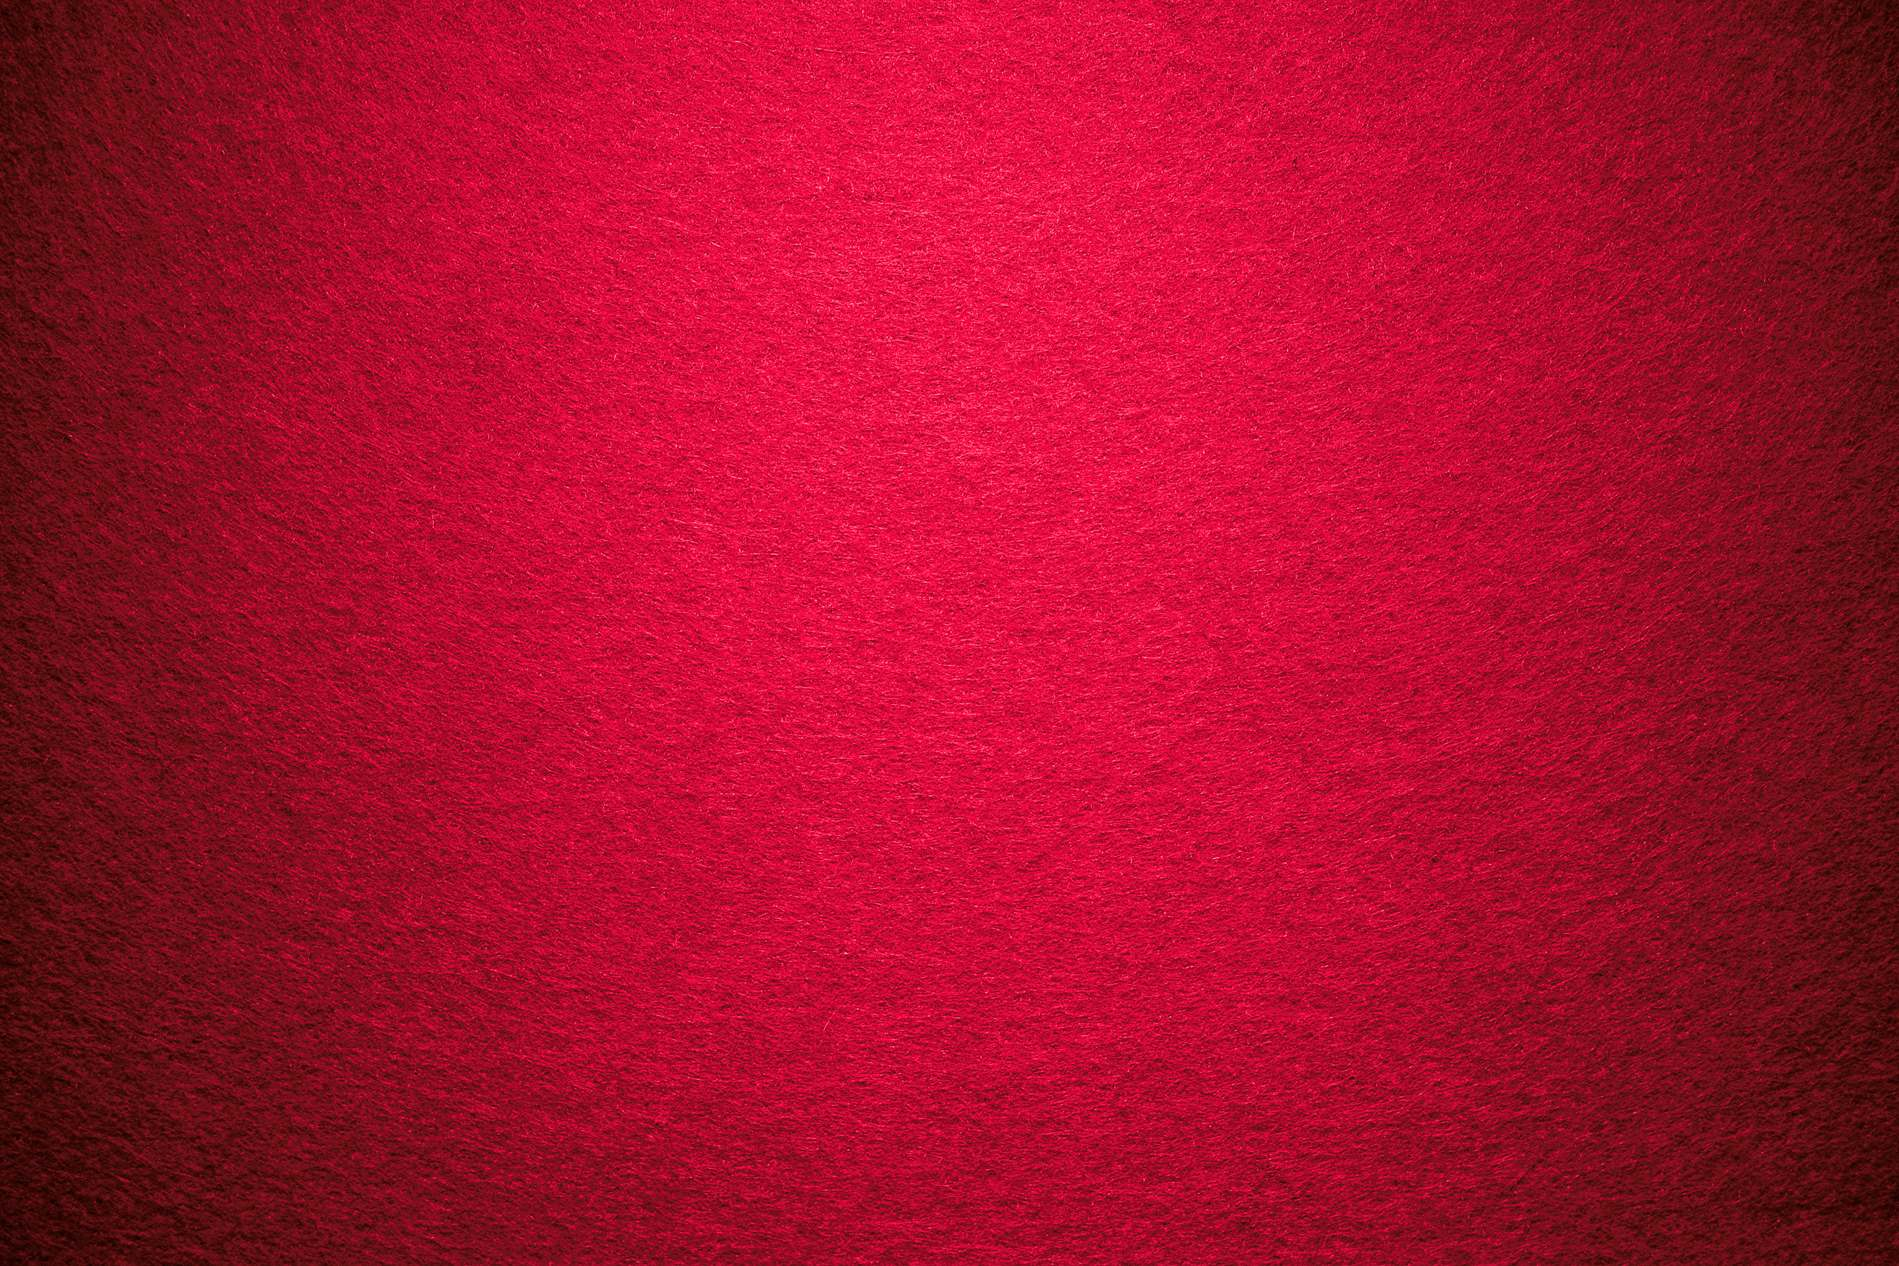 colorful carpet texture background - photo #7